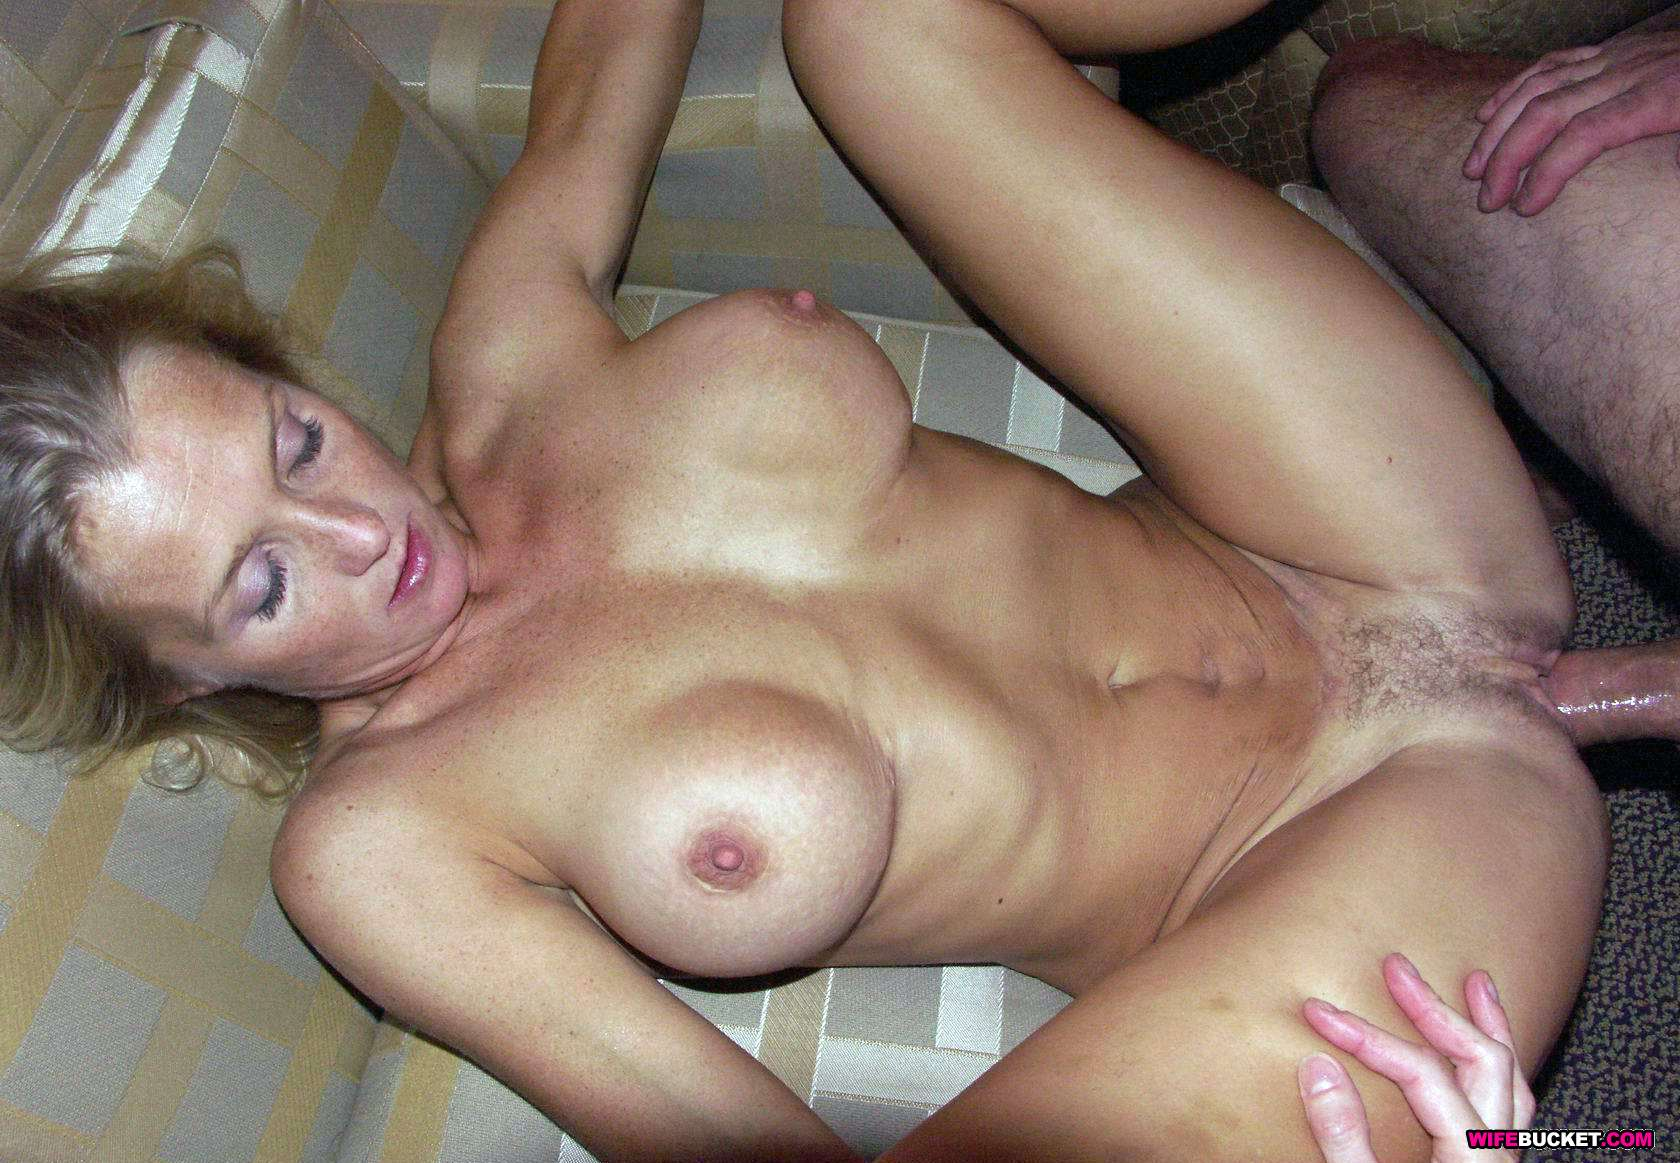 Amature wife milf videos